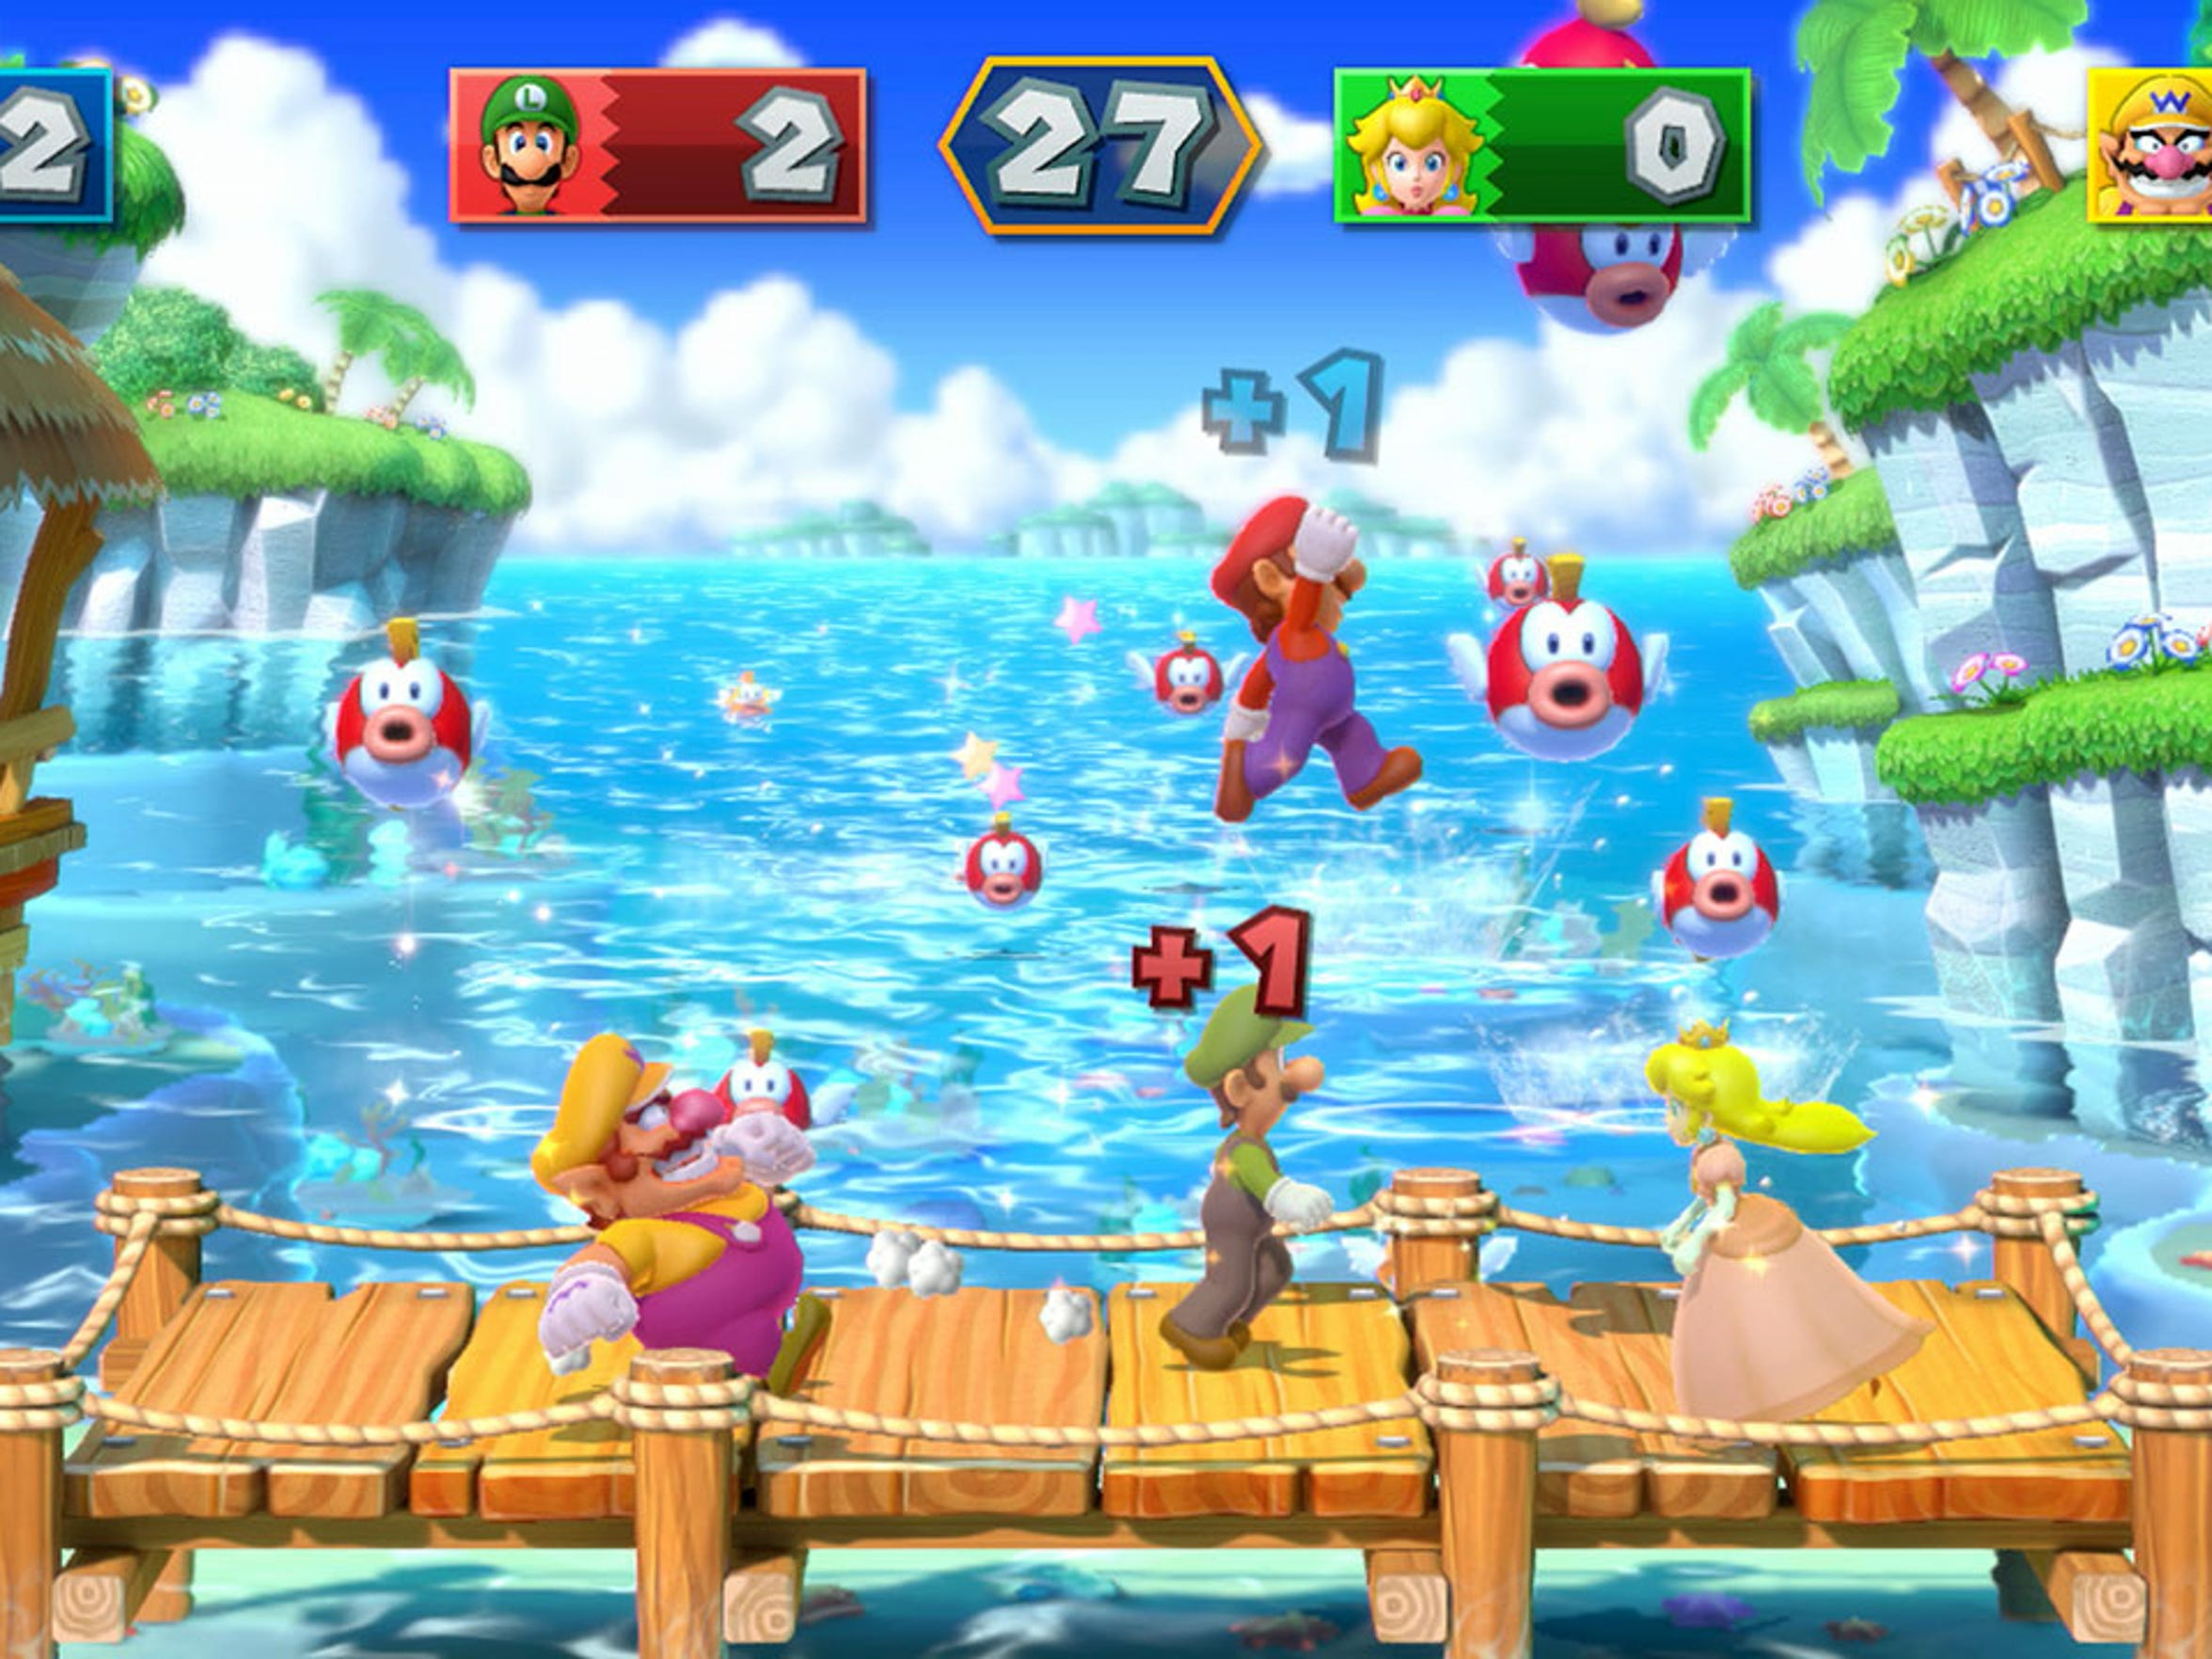 """""""Mario Party 10"""" for the Nintendo Wii U features more than 70 mini-games."""